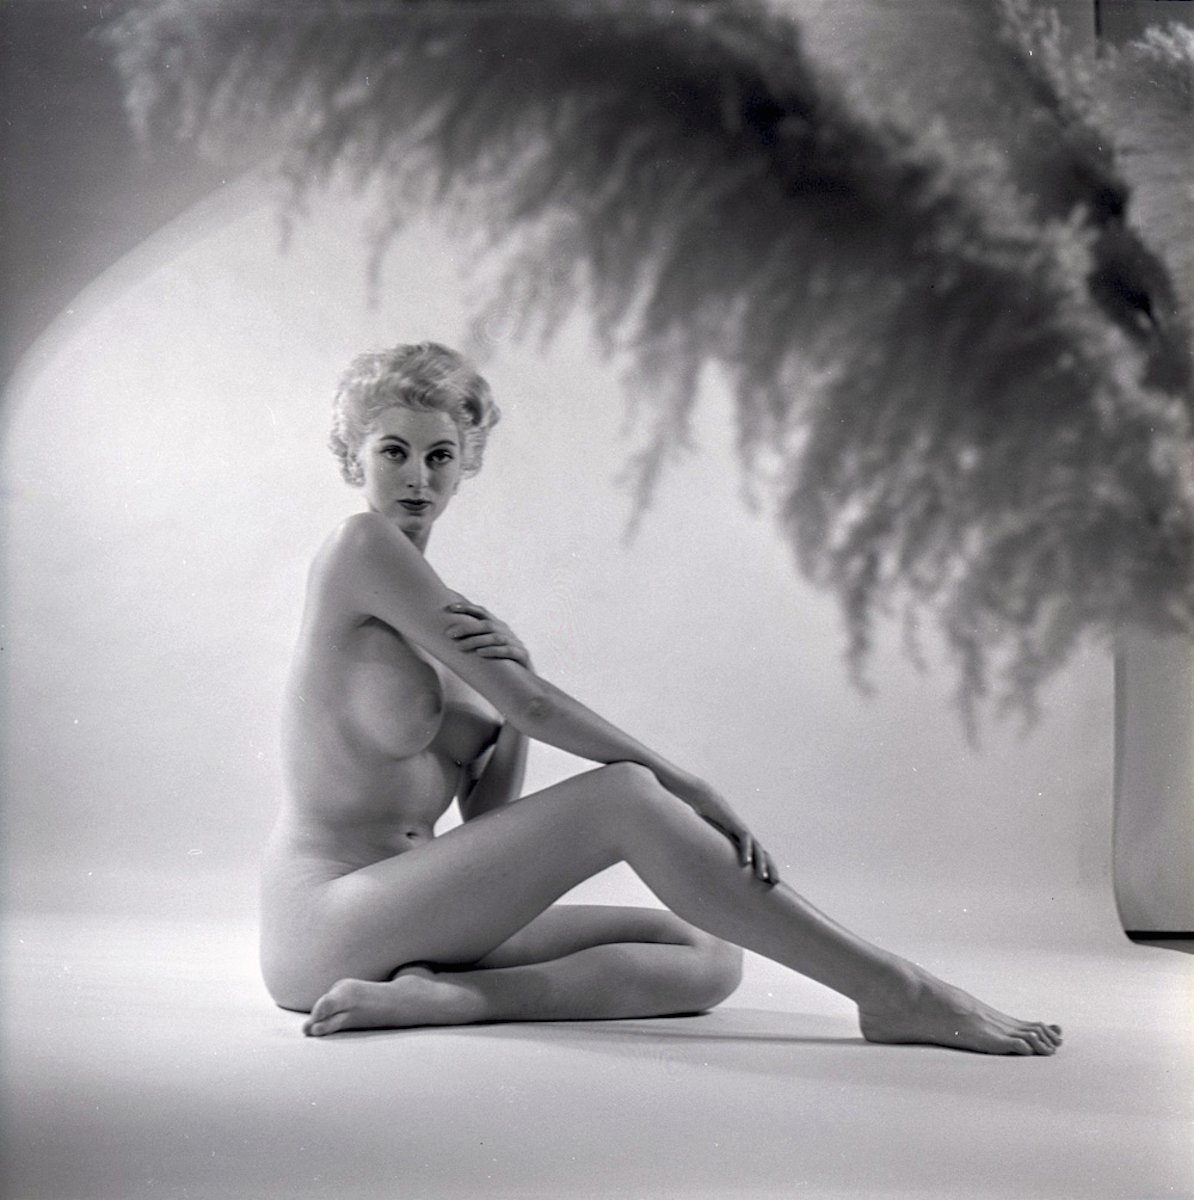 Peter Basch - Carmen Dell'Orefice https://t.co/mSdm3dpaUd